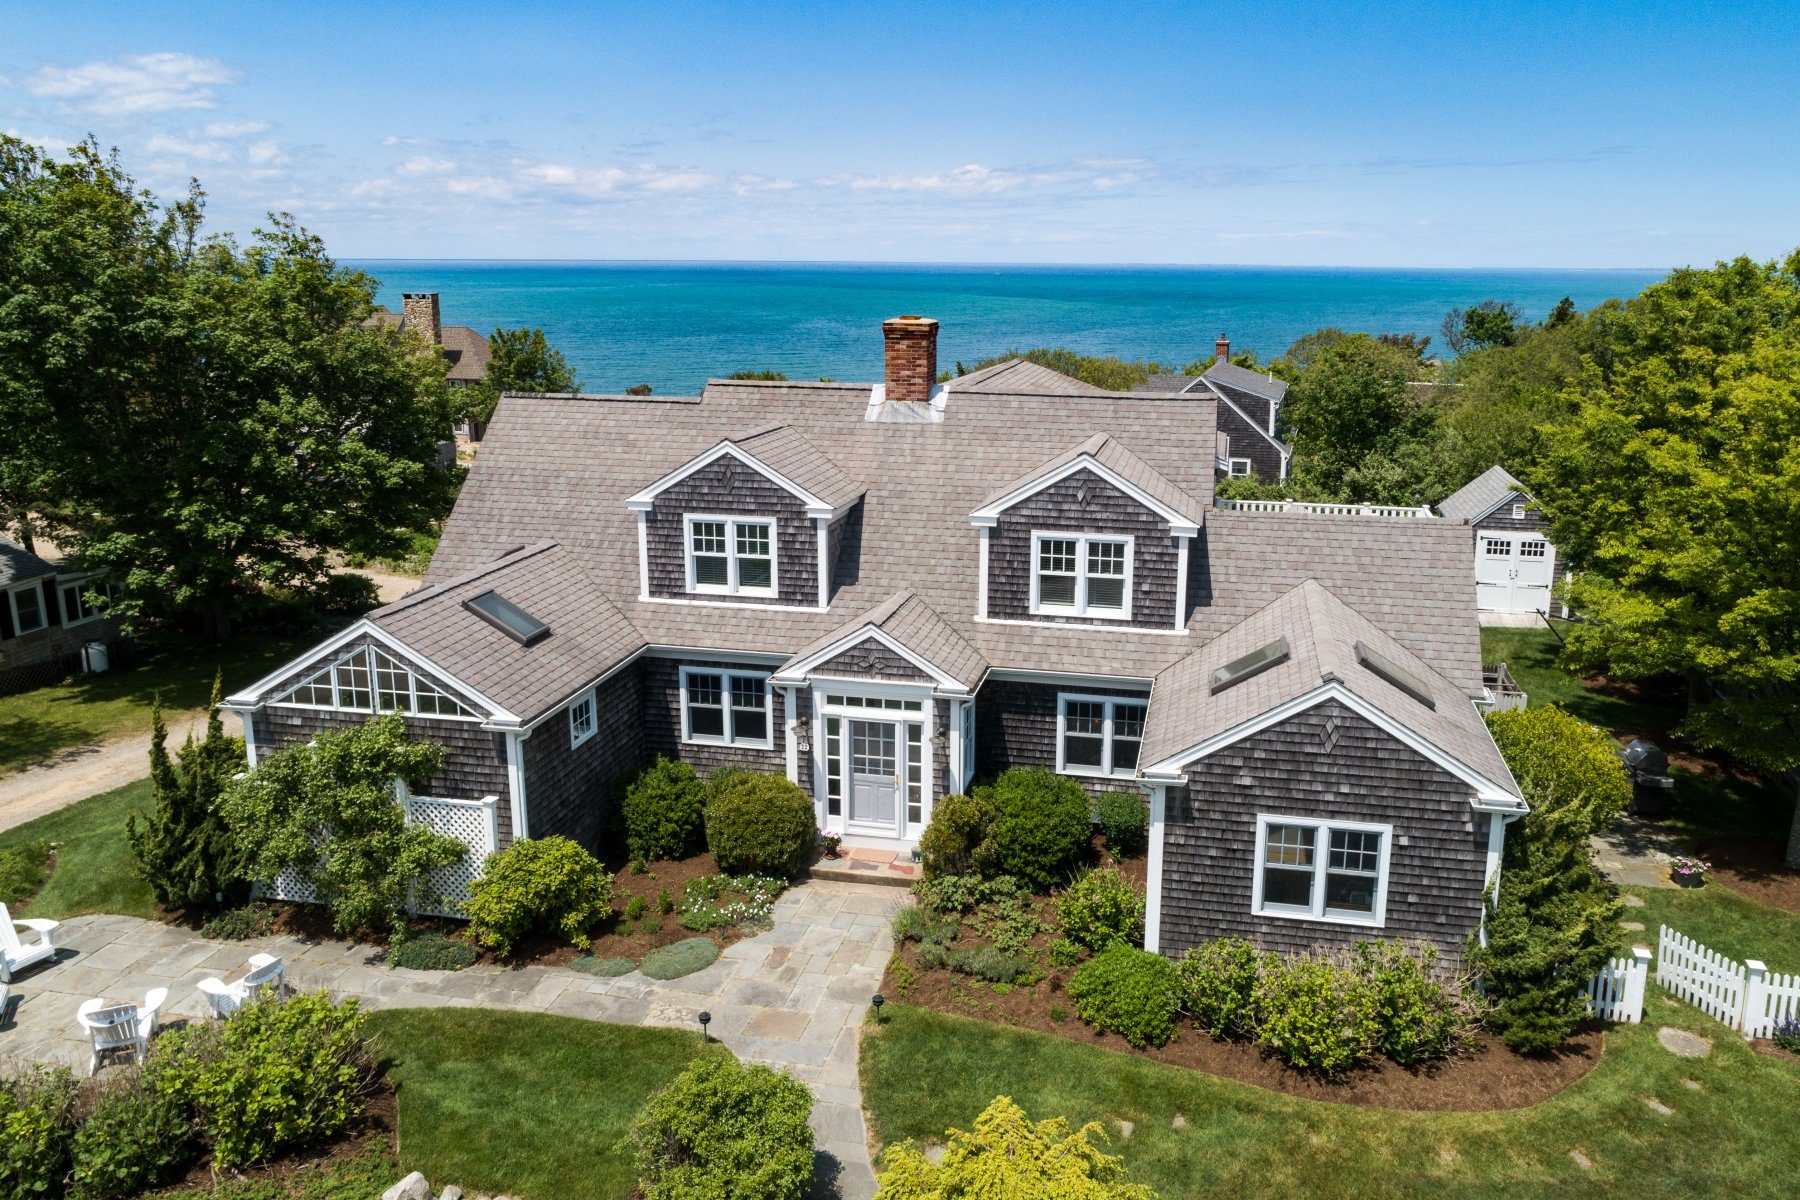 Single Family Homes for Active at 22 Franklin Cartway, Brewster, MA 22 Franklin Cartway Brewster, Massachusetts 02631 United States